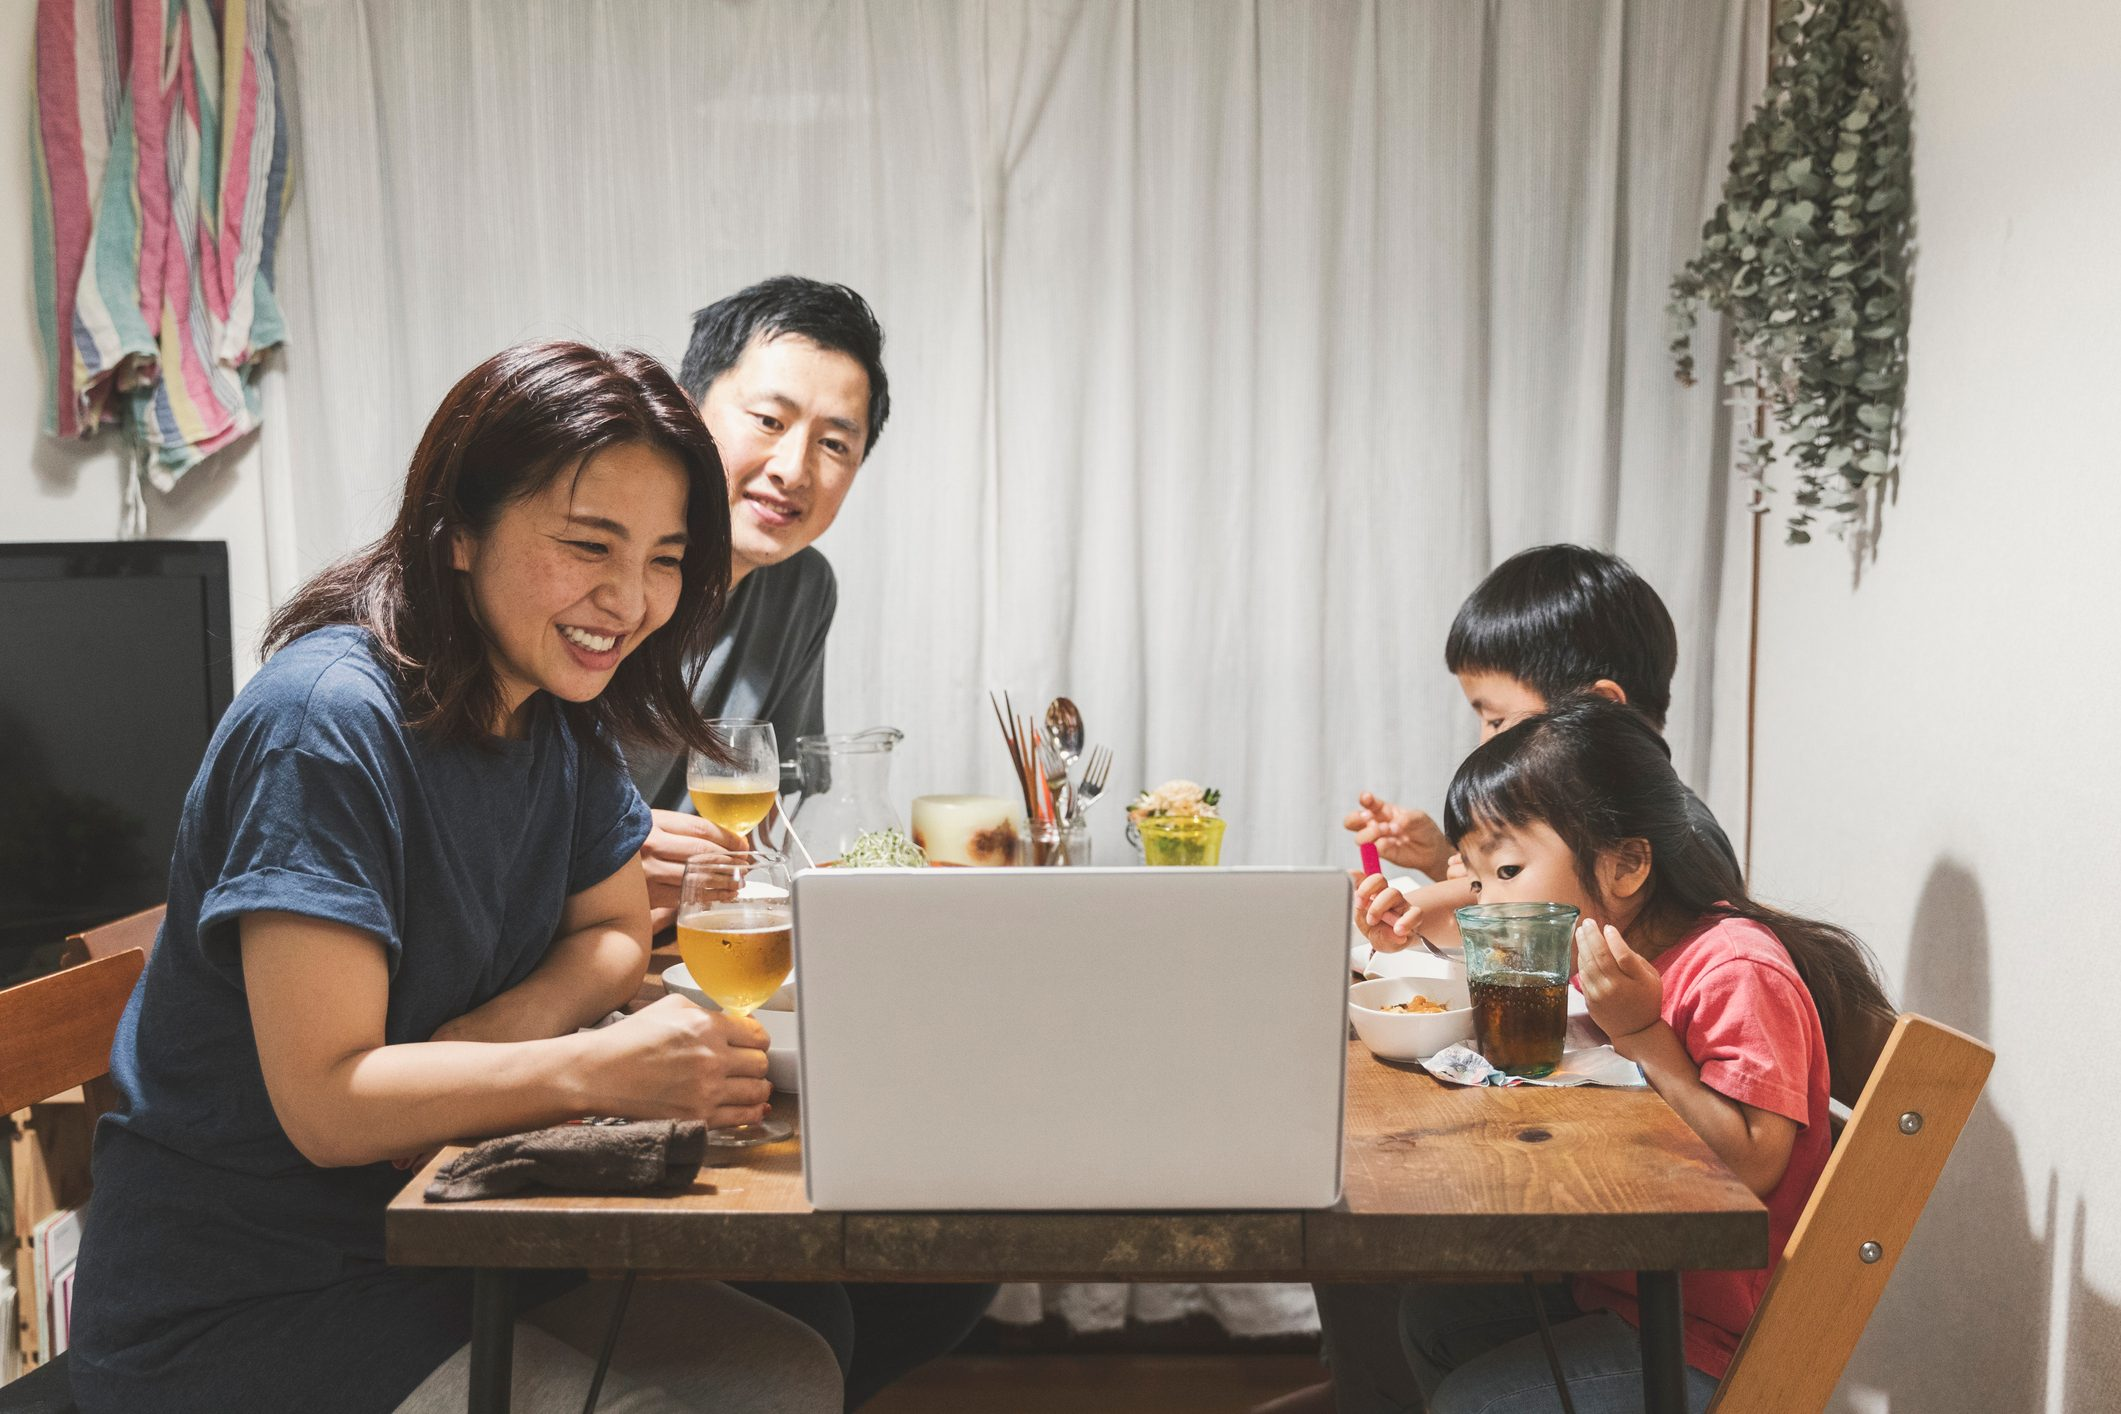 Family attending online video meeting and having dinner together at home